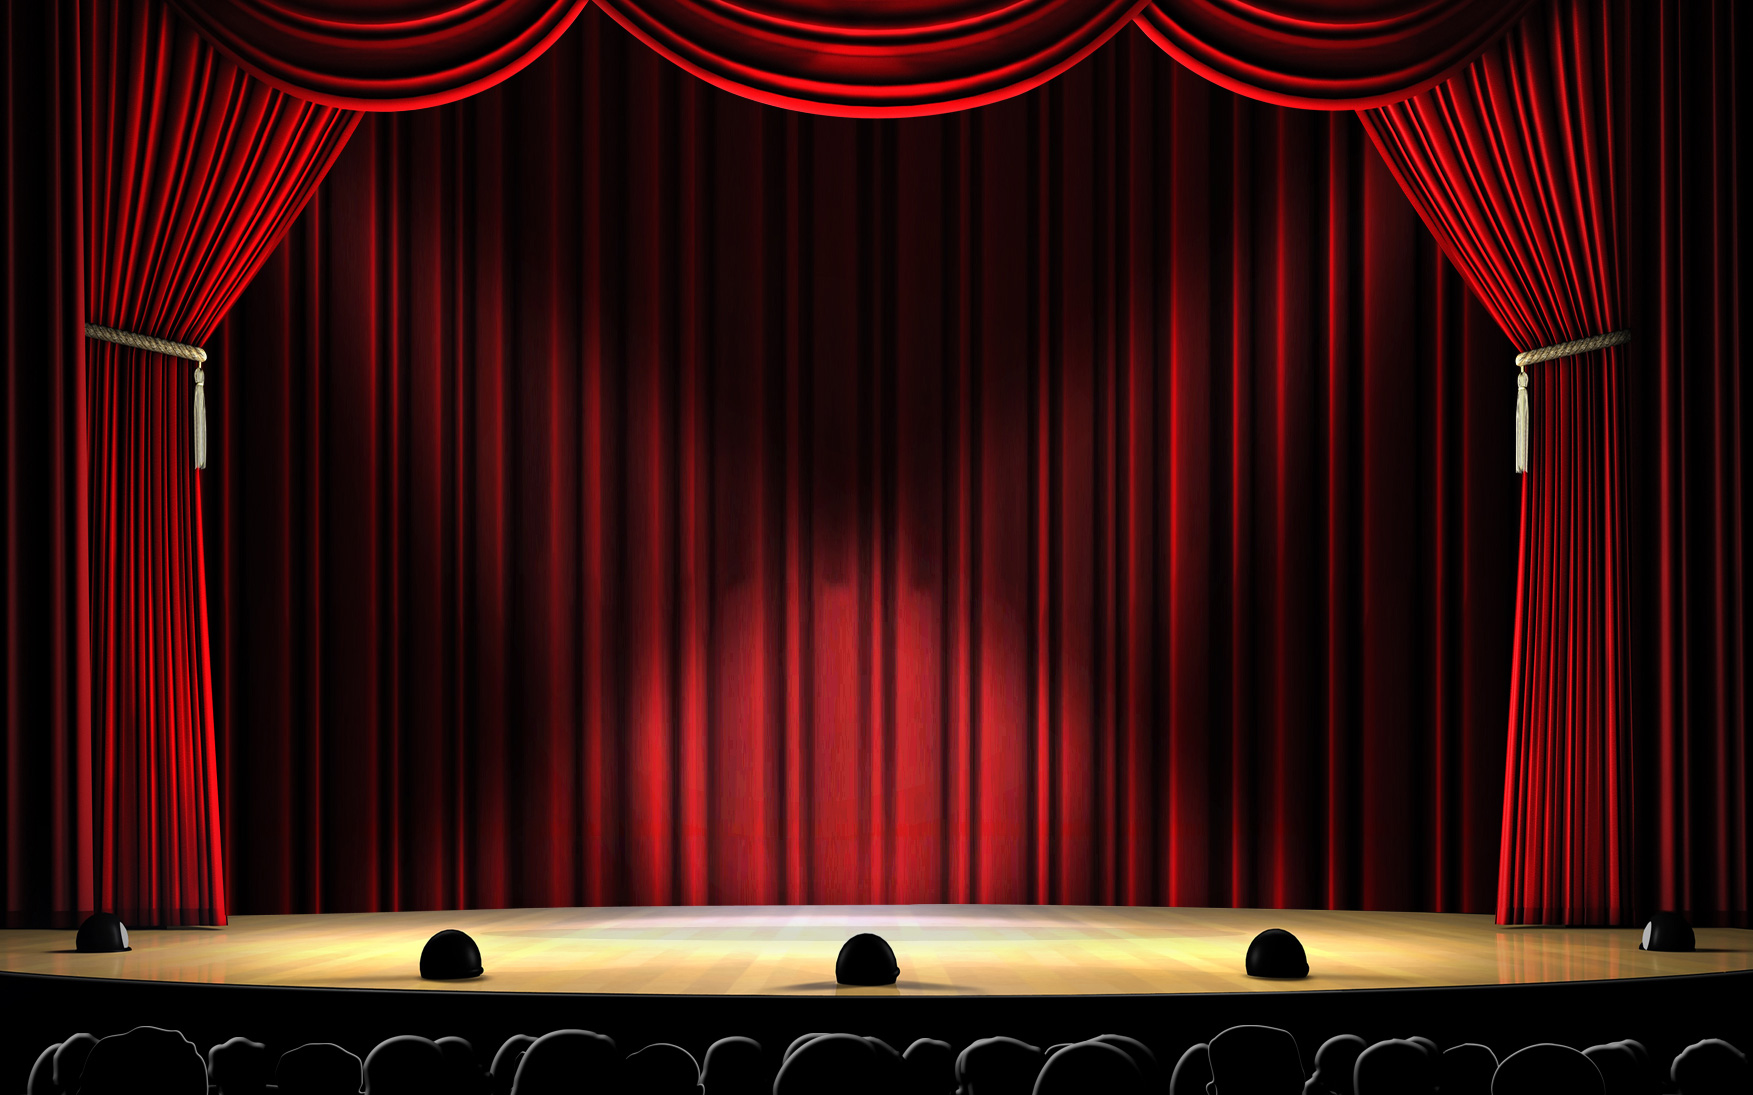 stage-red-curtain.jpg